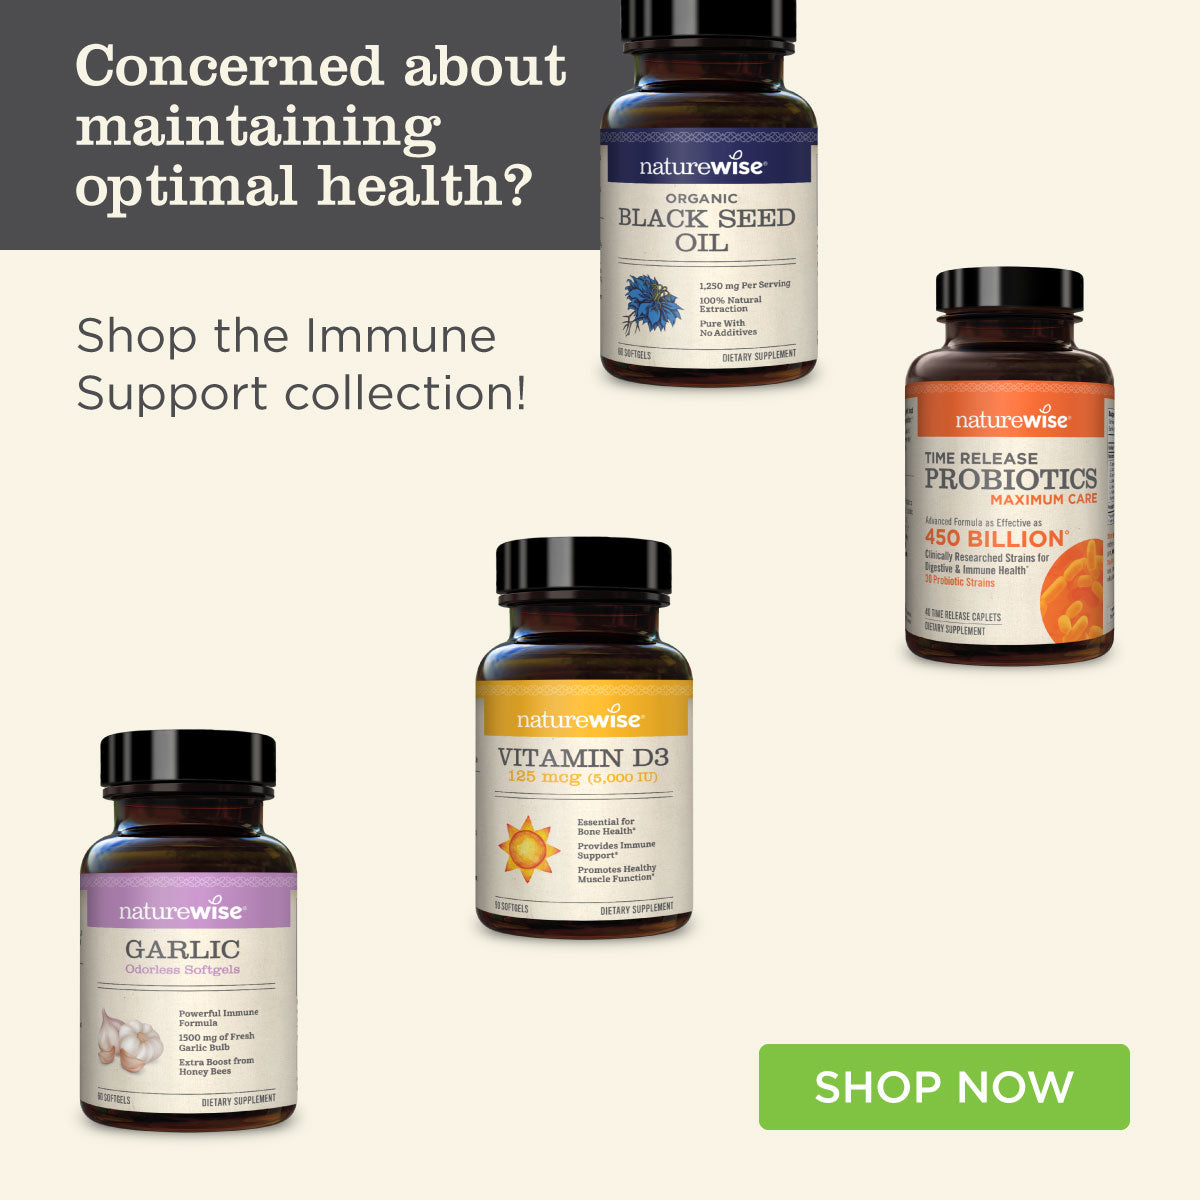 Shop the Immune Support collection!